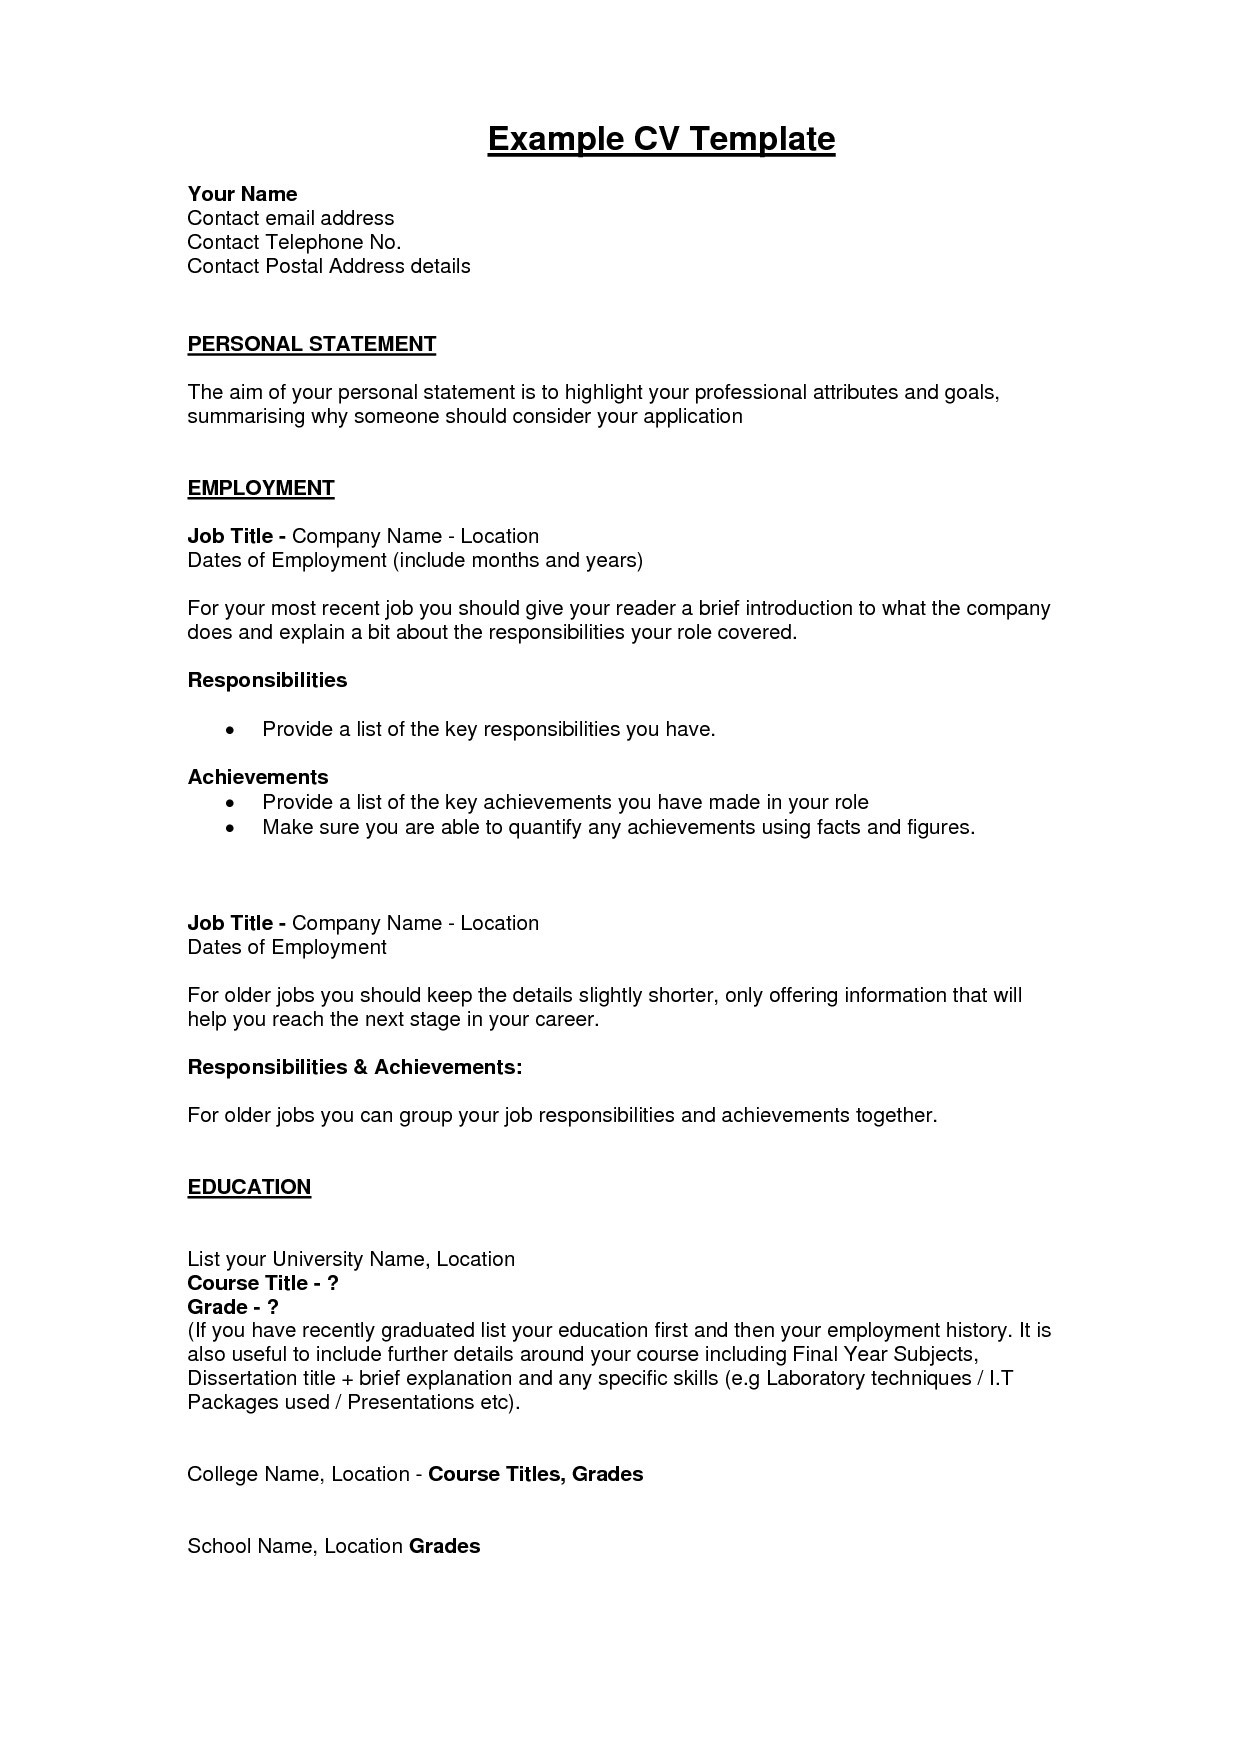 I Need A Resume - I Need A Resume Fast Best Tips for Job Winning Cover Letter